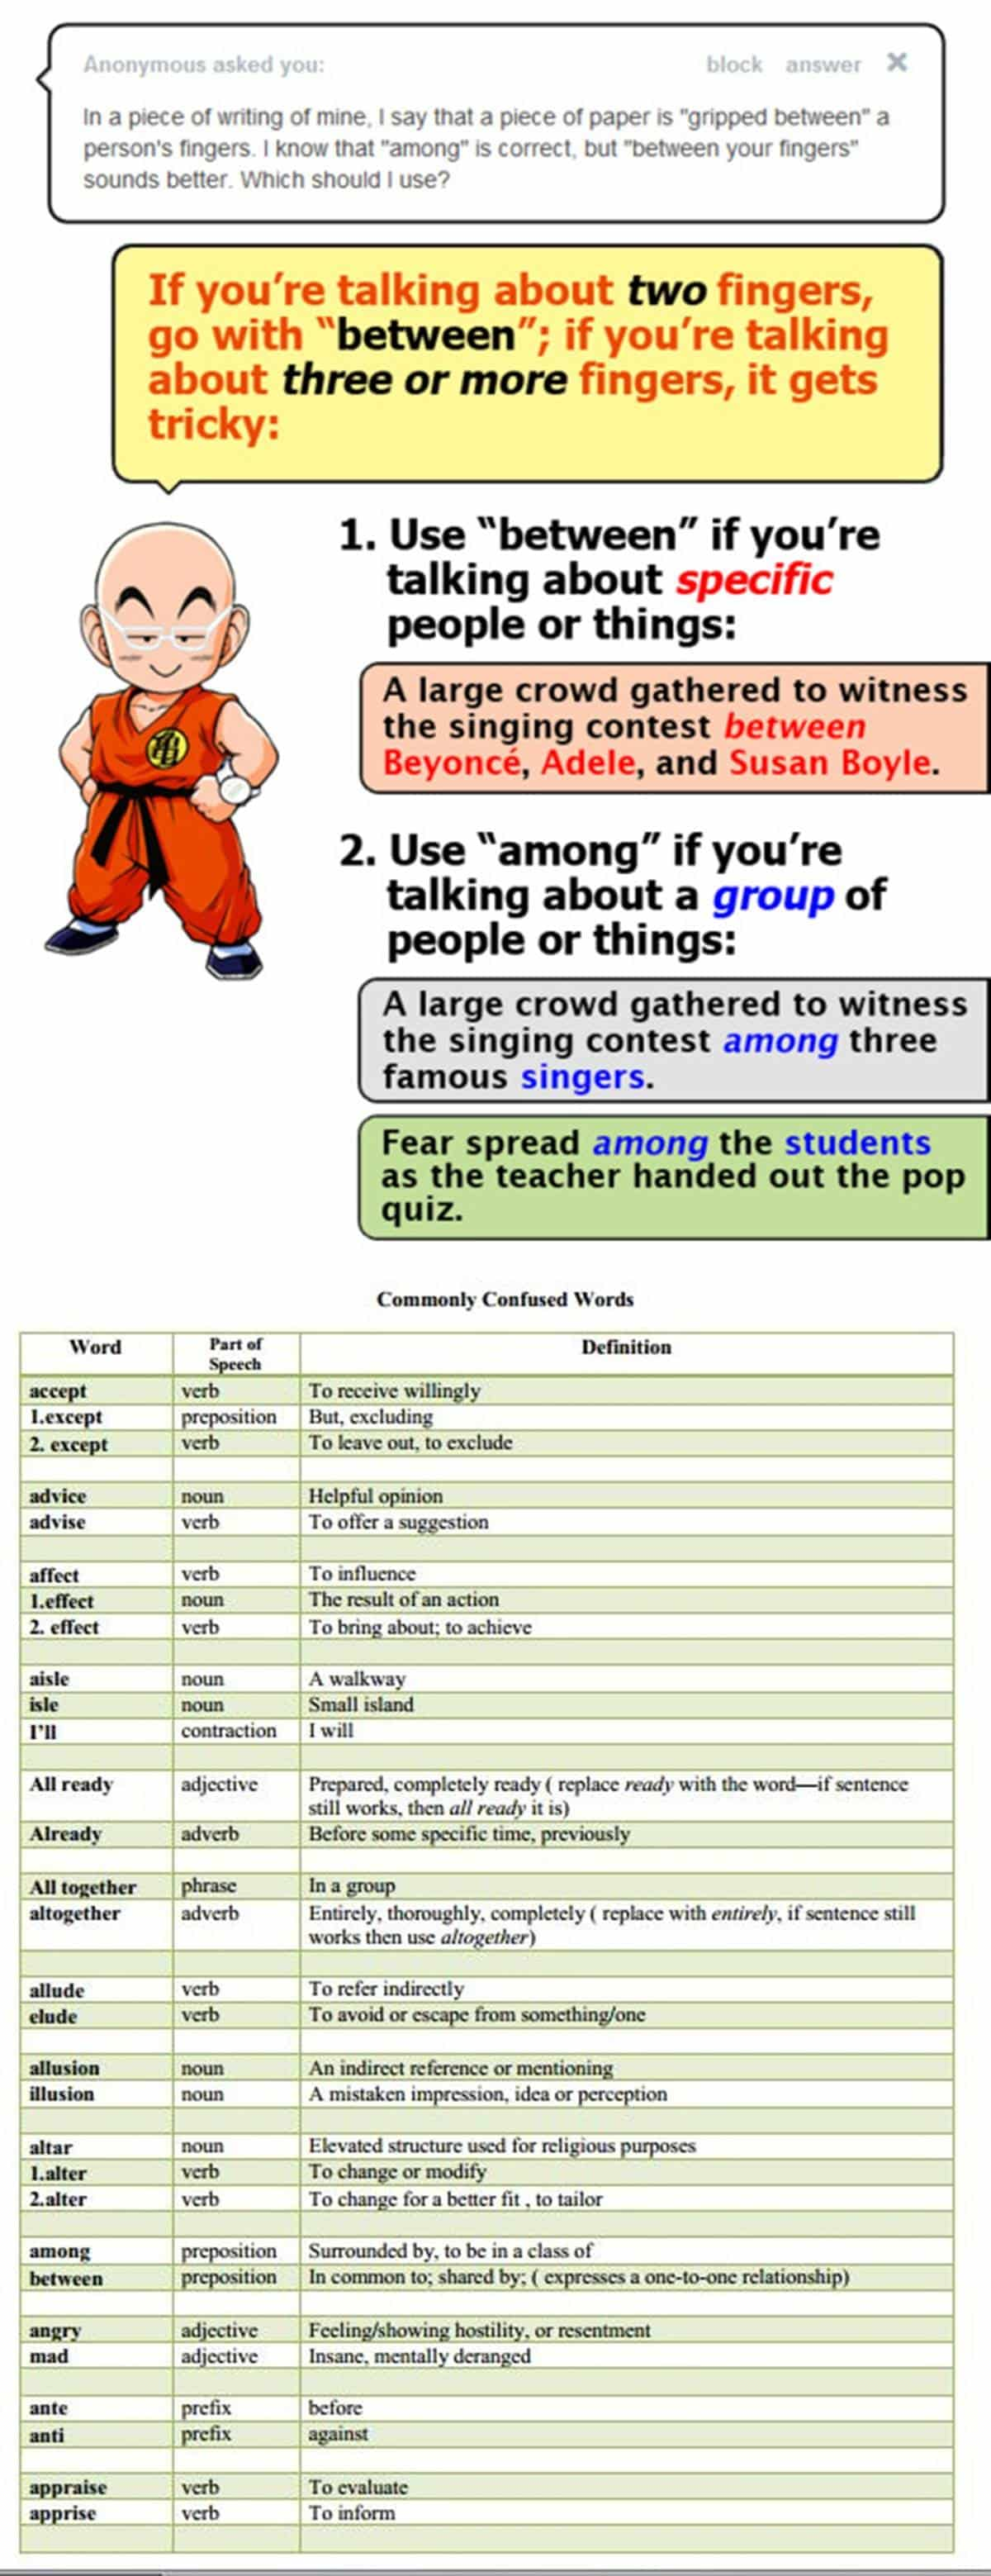 Common Confusing English Words